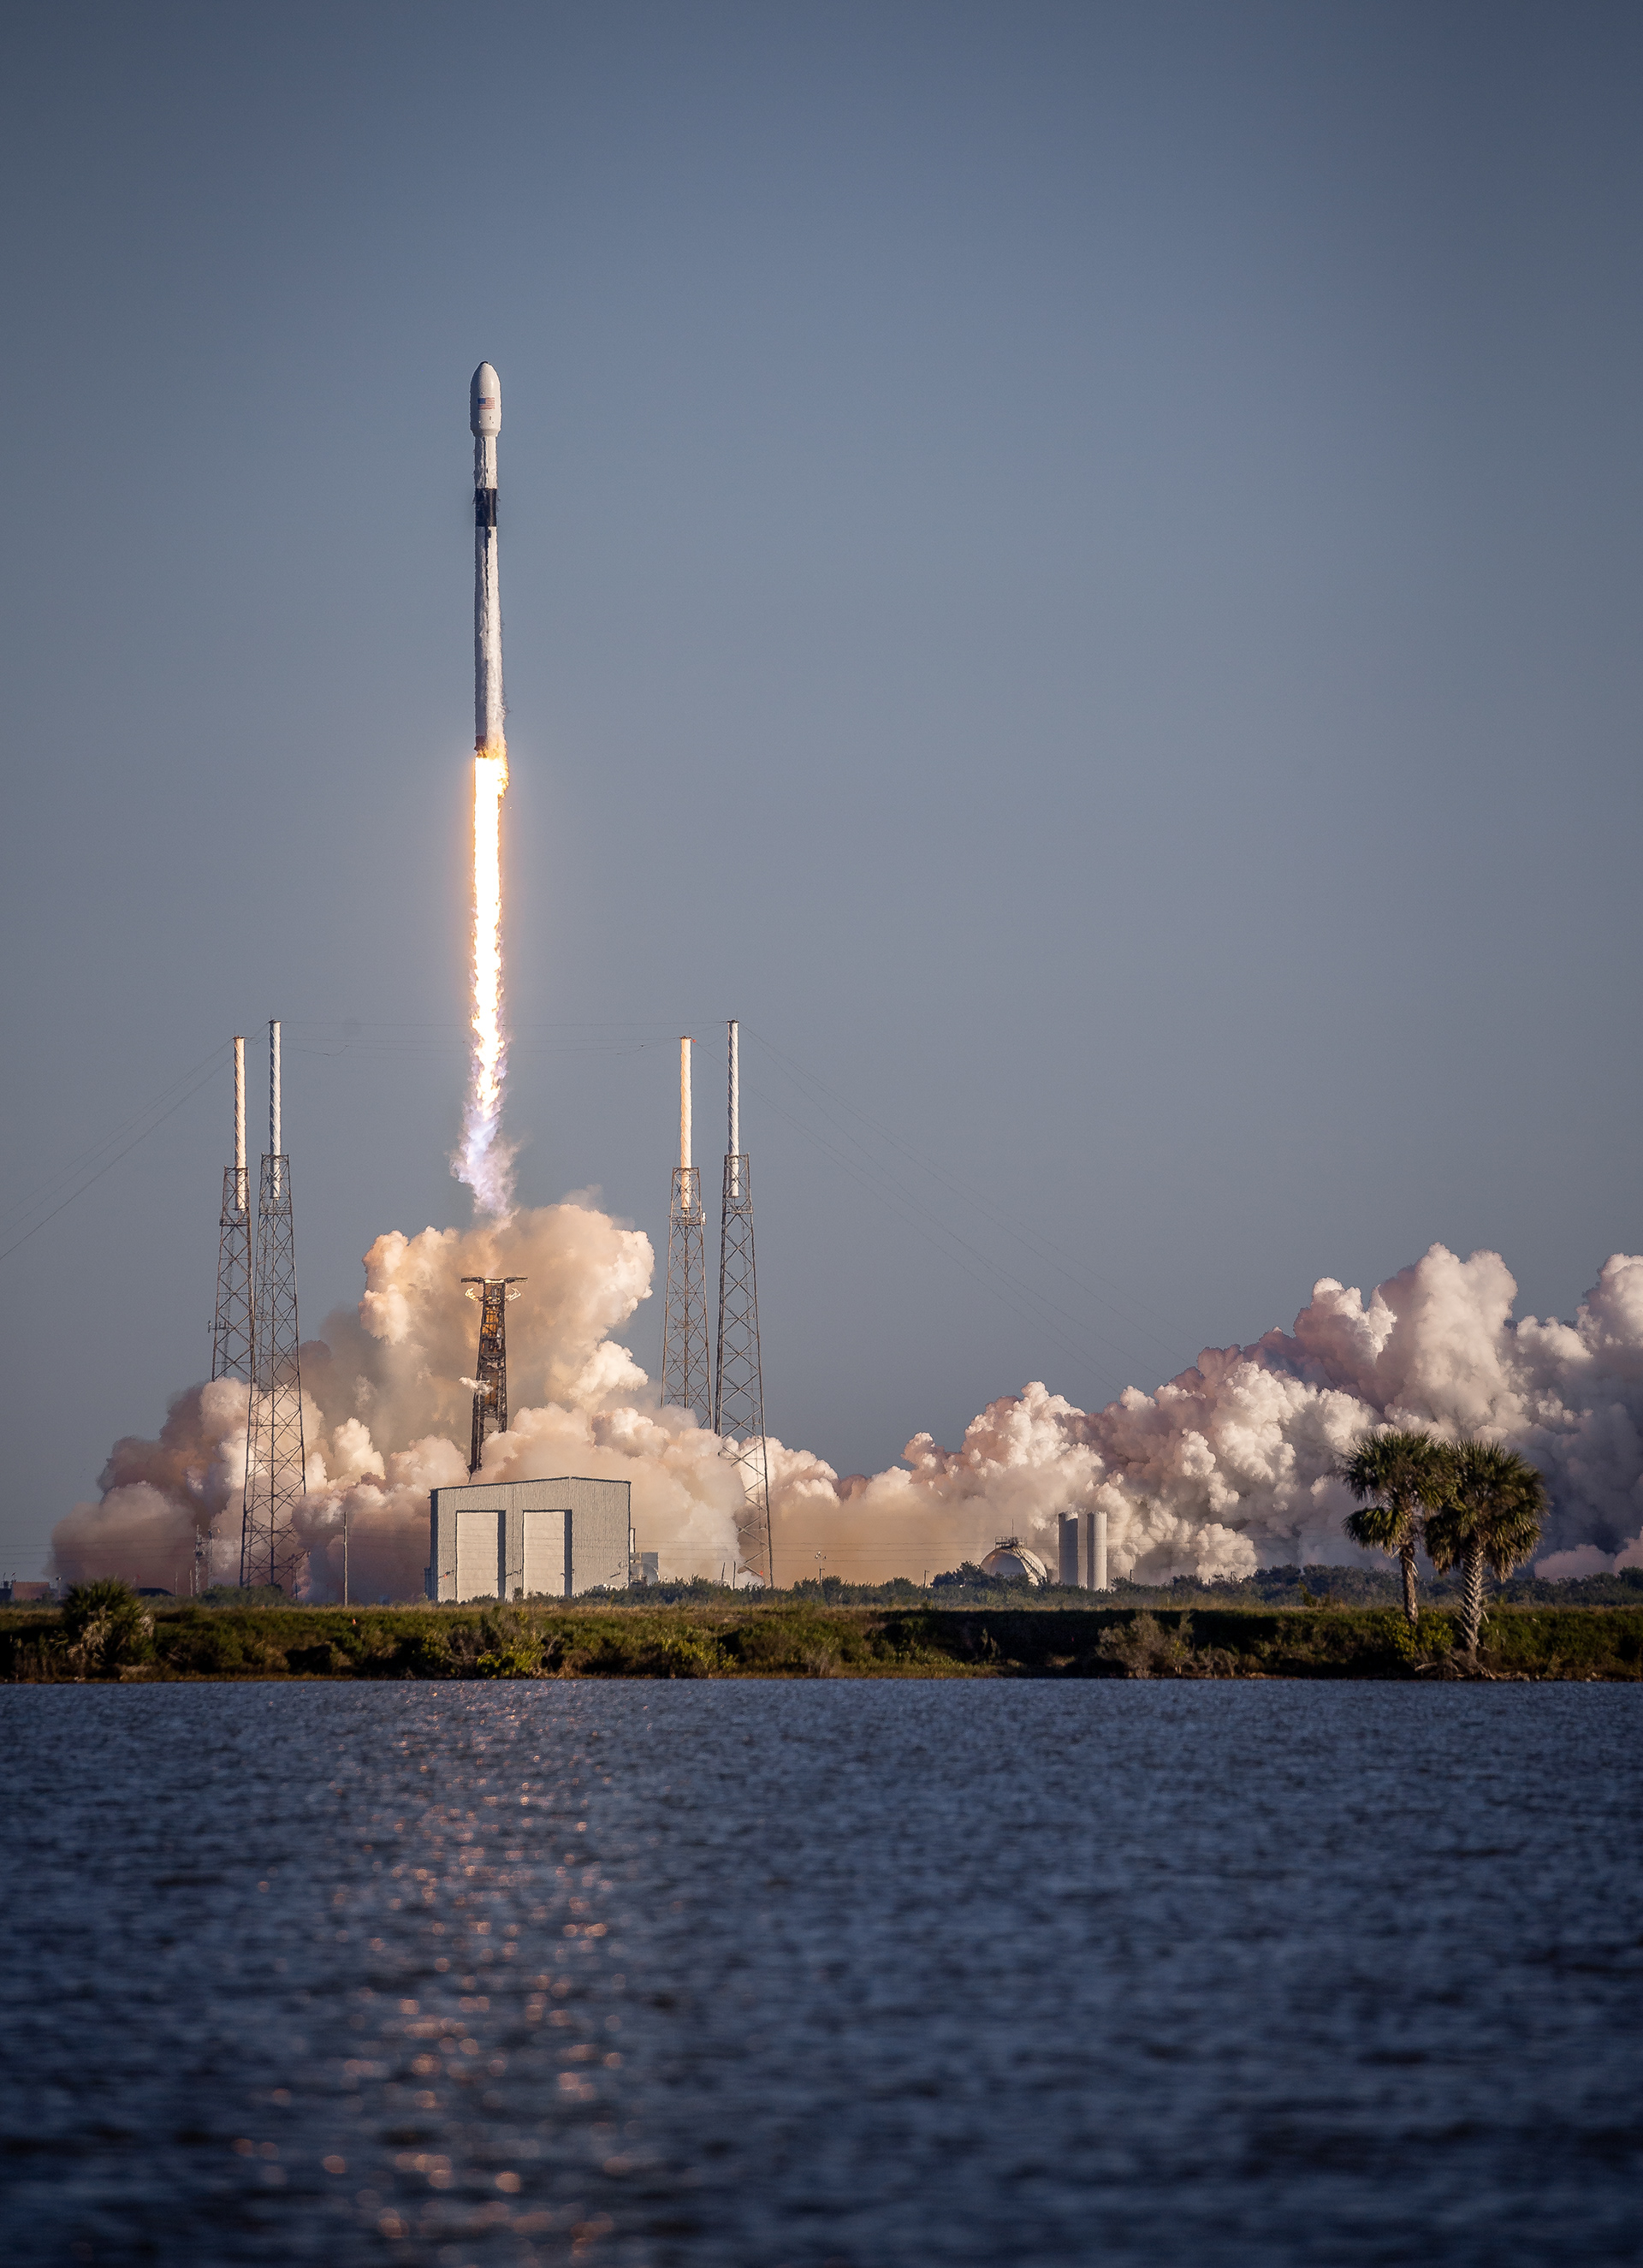 spacex launches rocket - HD1920×2650